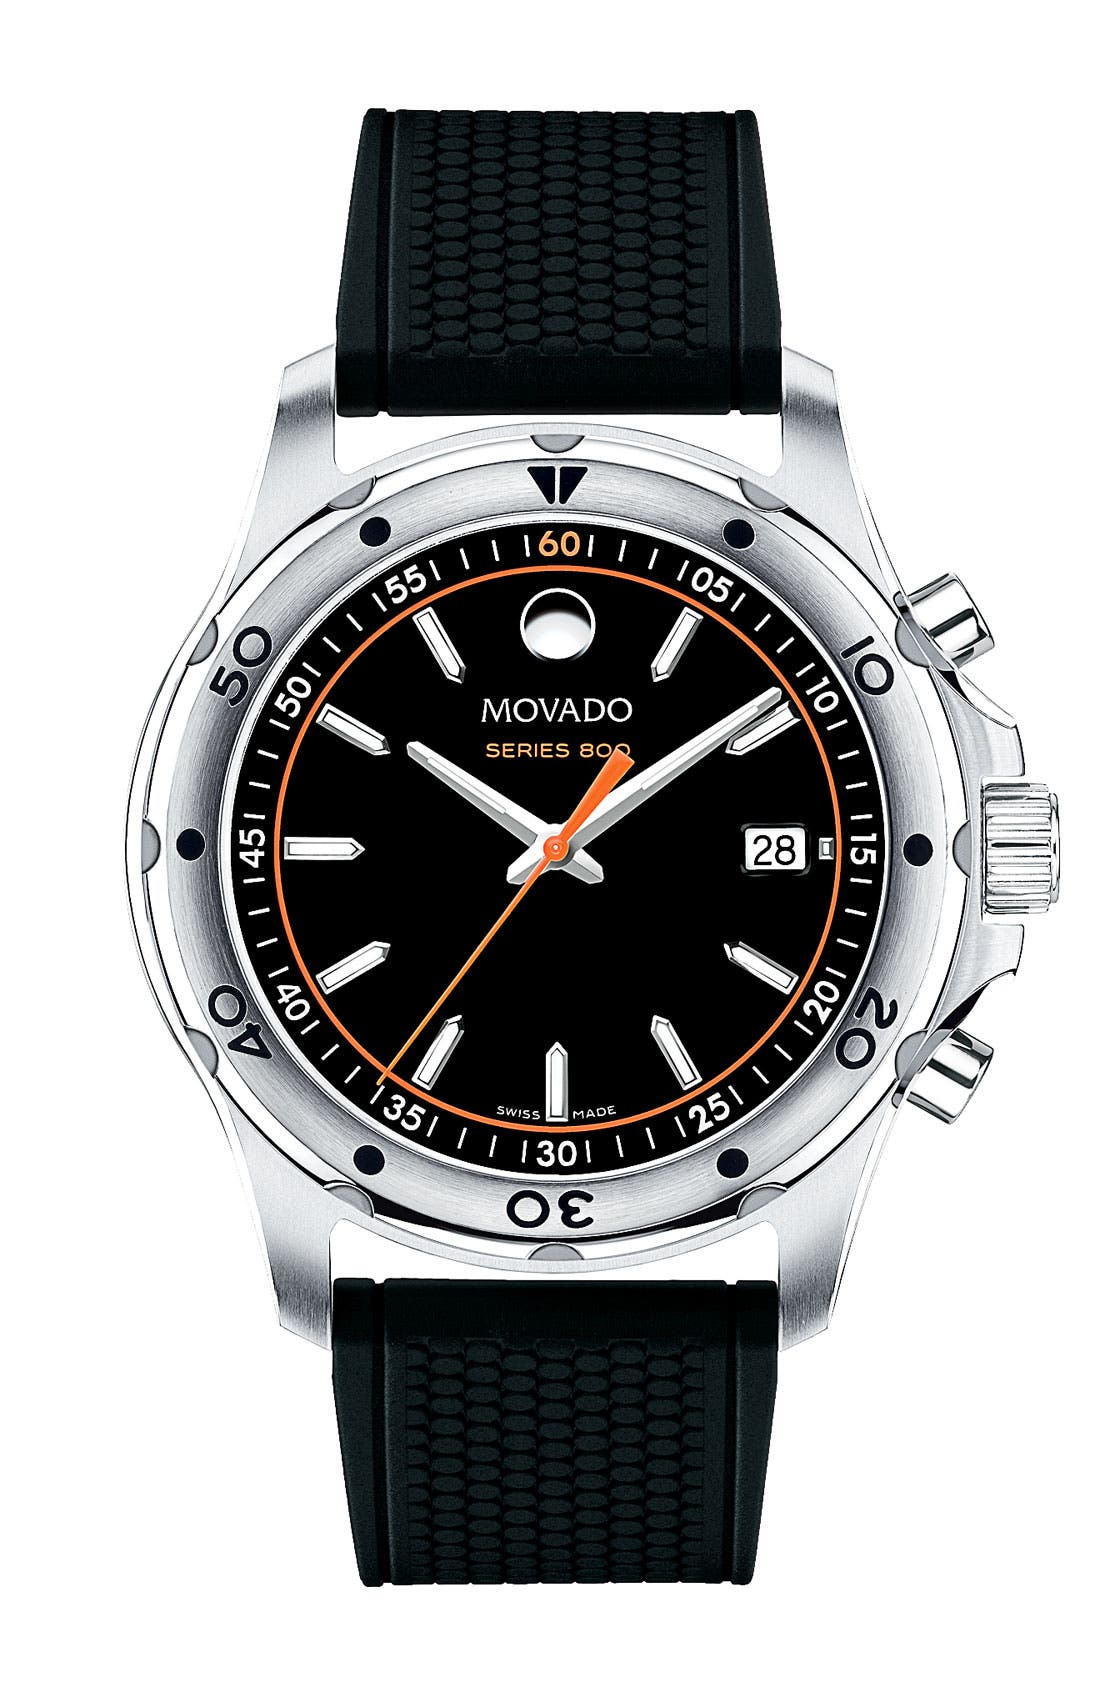 Alternate Image 1 Selected - Movado 'Series 800' Rubber Strap Watch